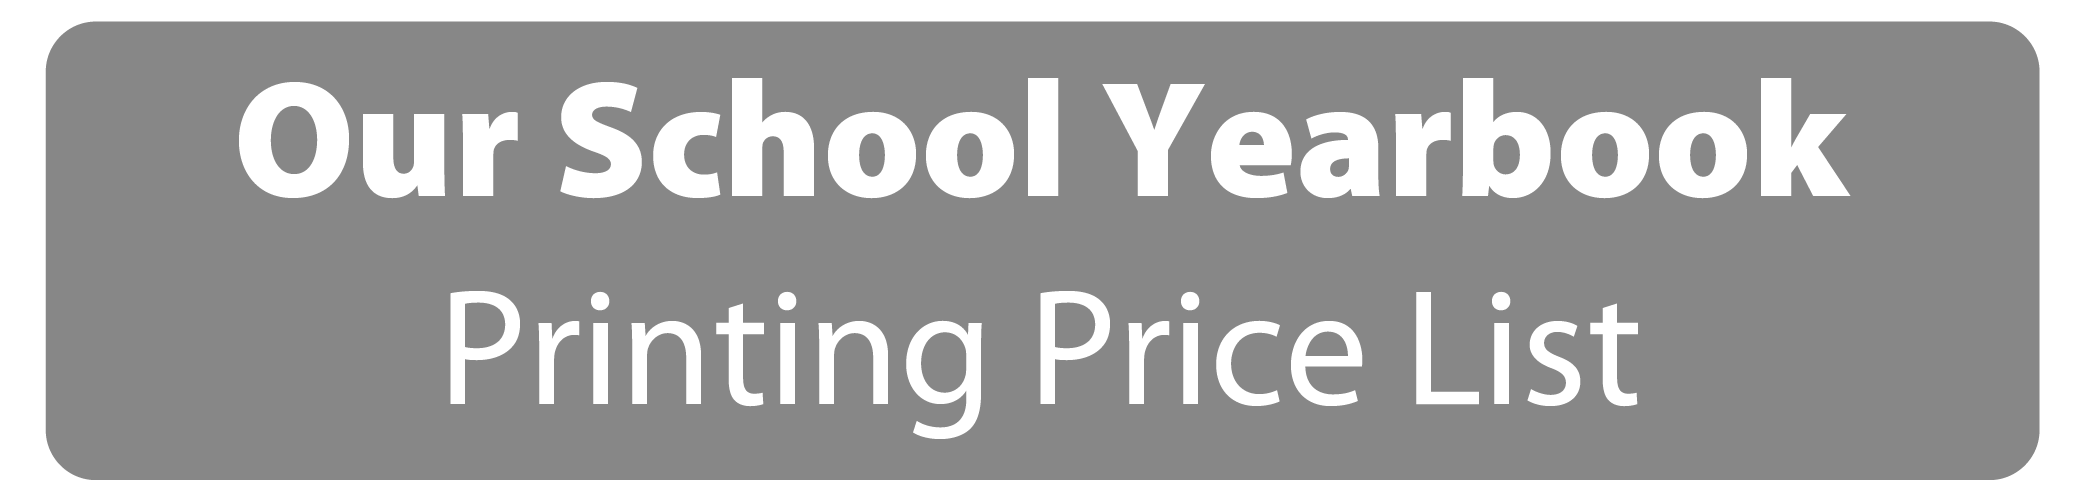 Low Cost School Yearbook Printing Prices